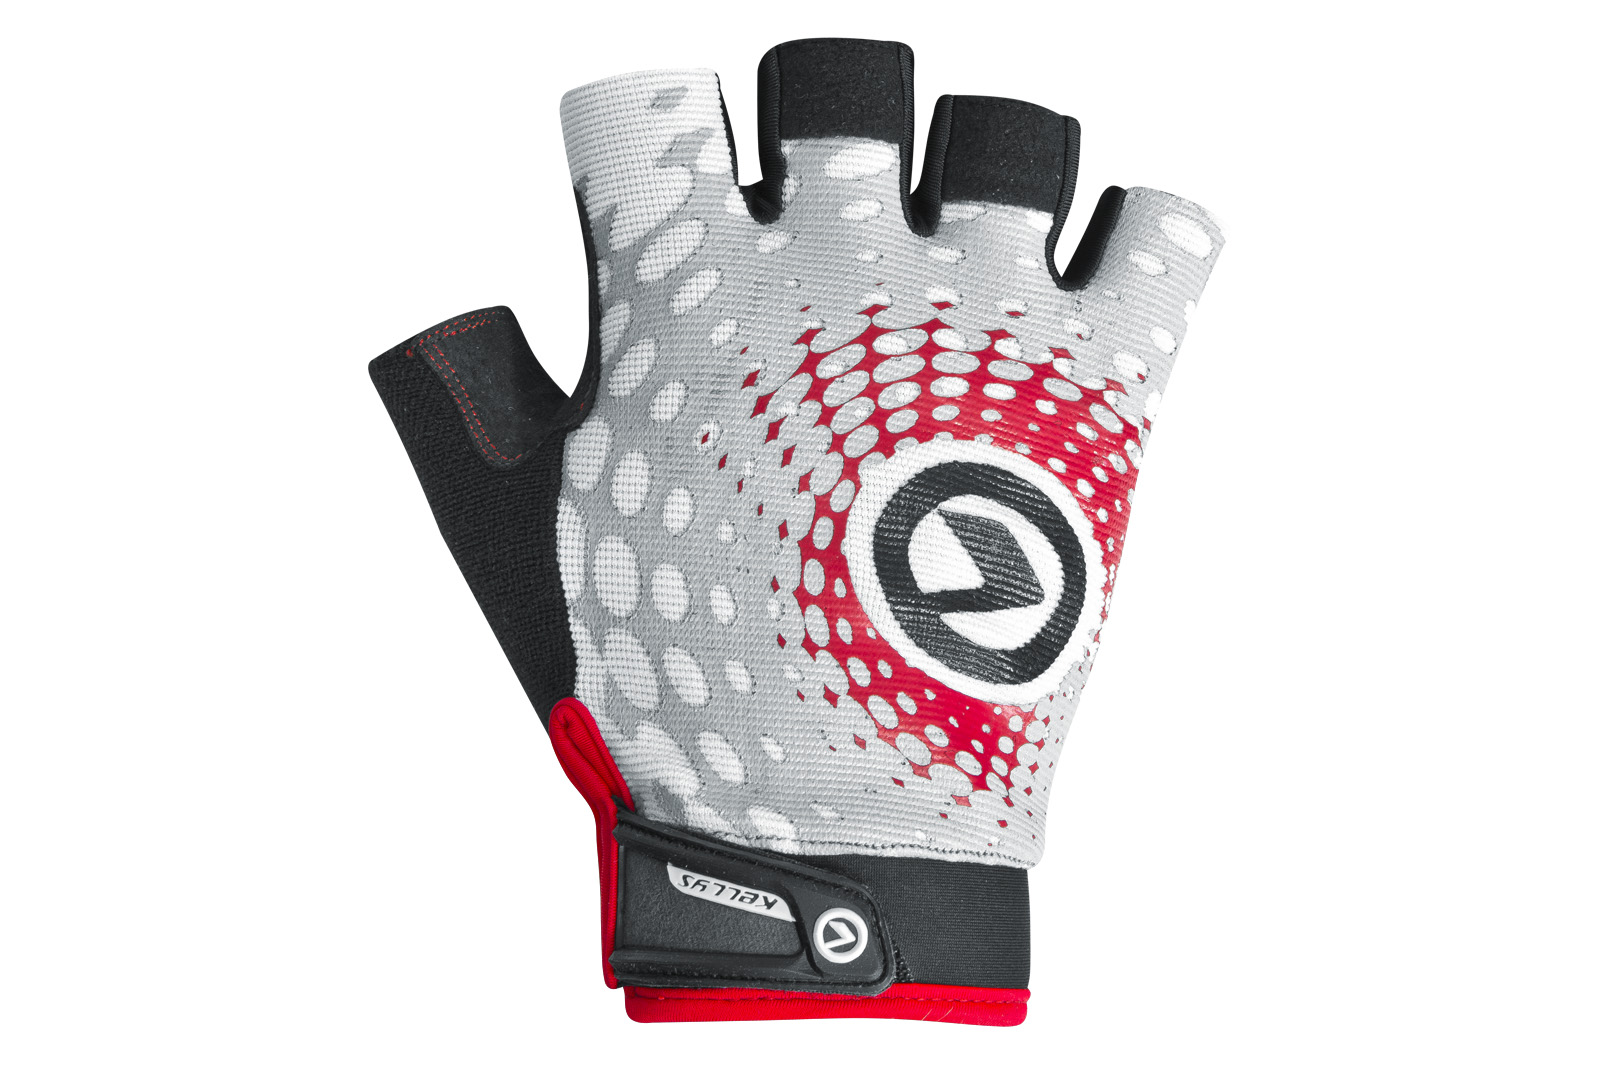 Handschuhe IMPACT short white-grey-red XS - Handschuhe IMPACT short white-grey-red XS